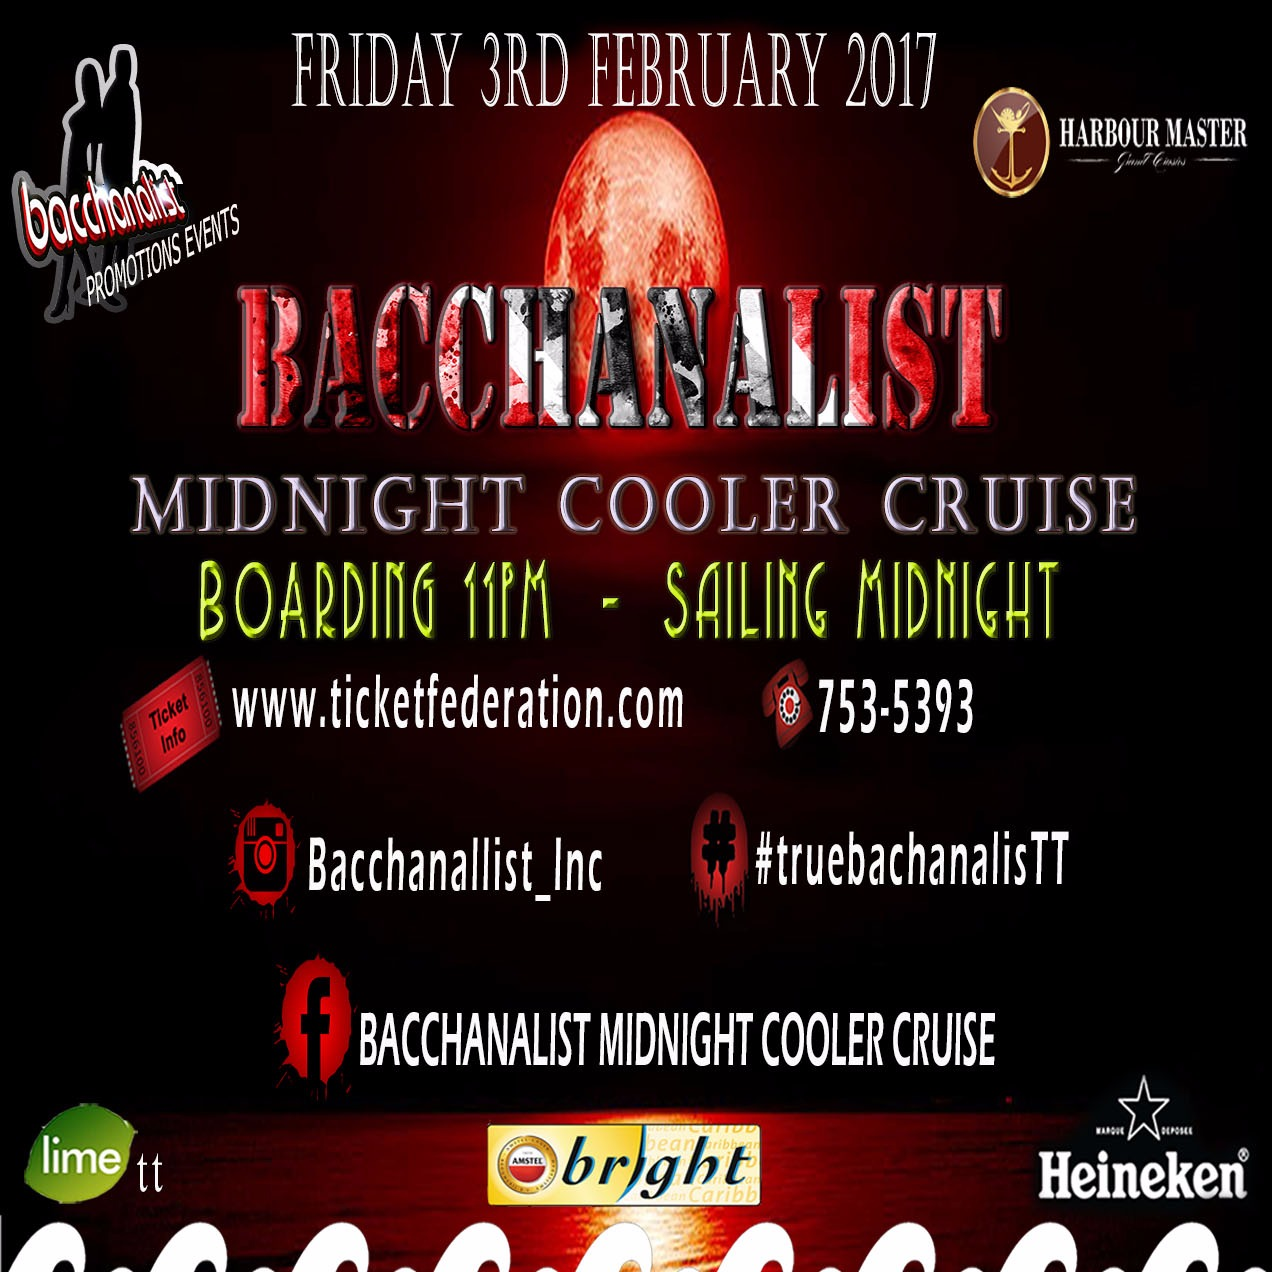 BACCHANALIST MIDNIGHT COOLER CRUISE